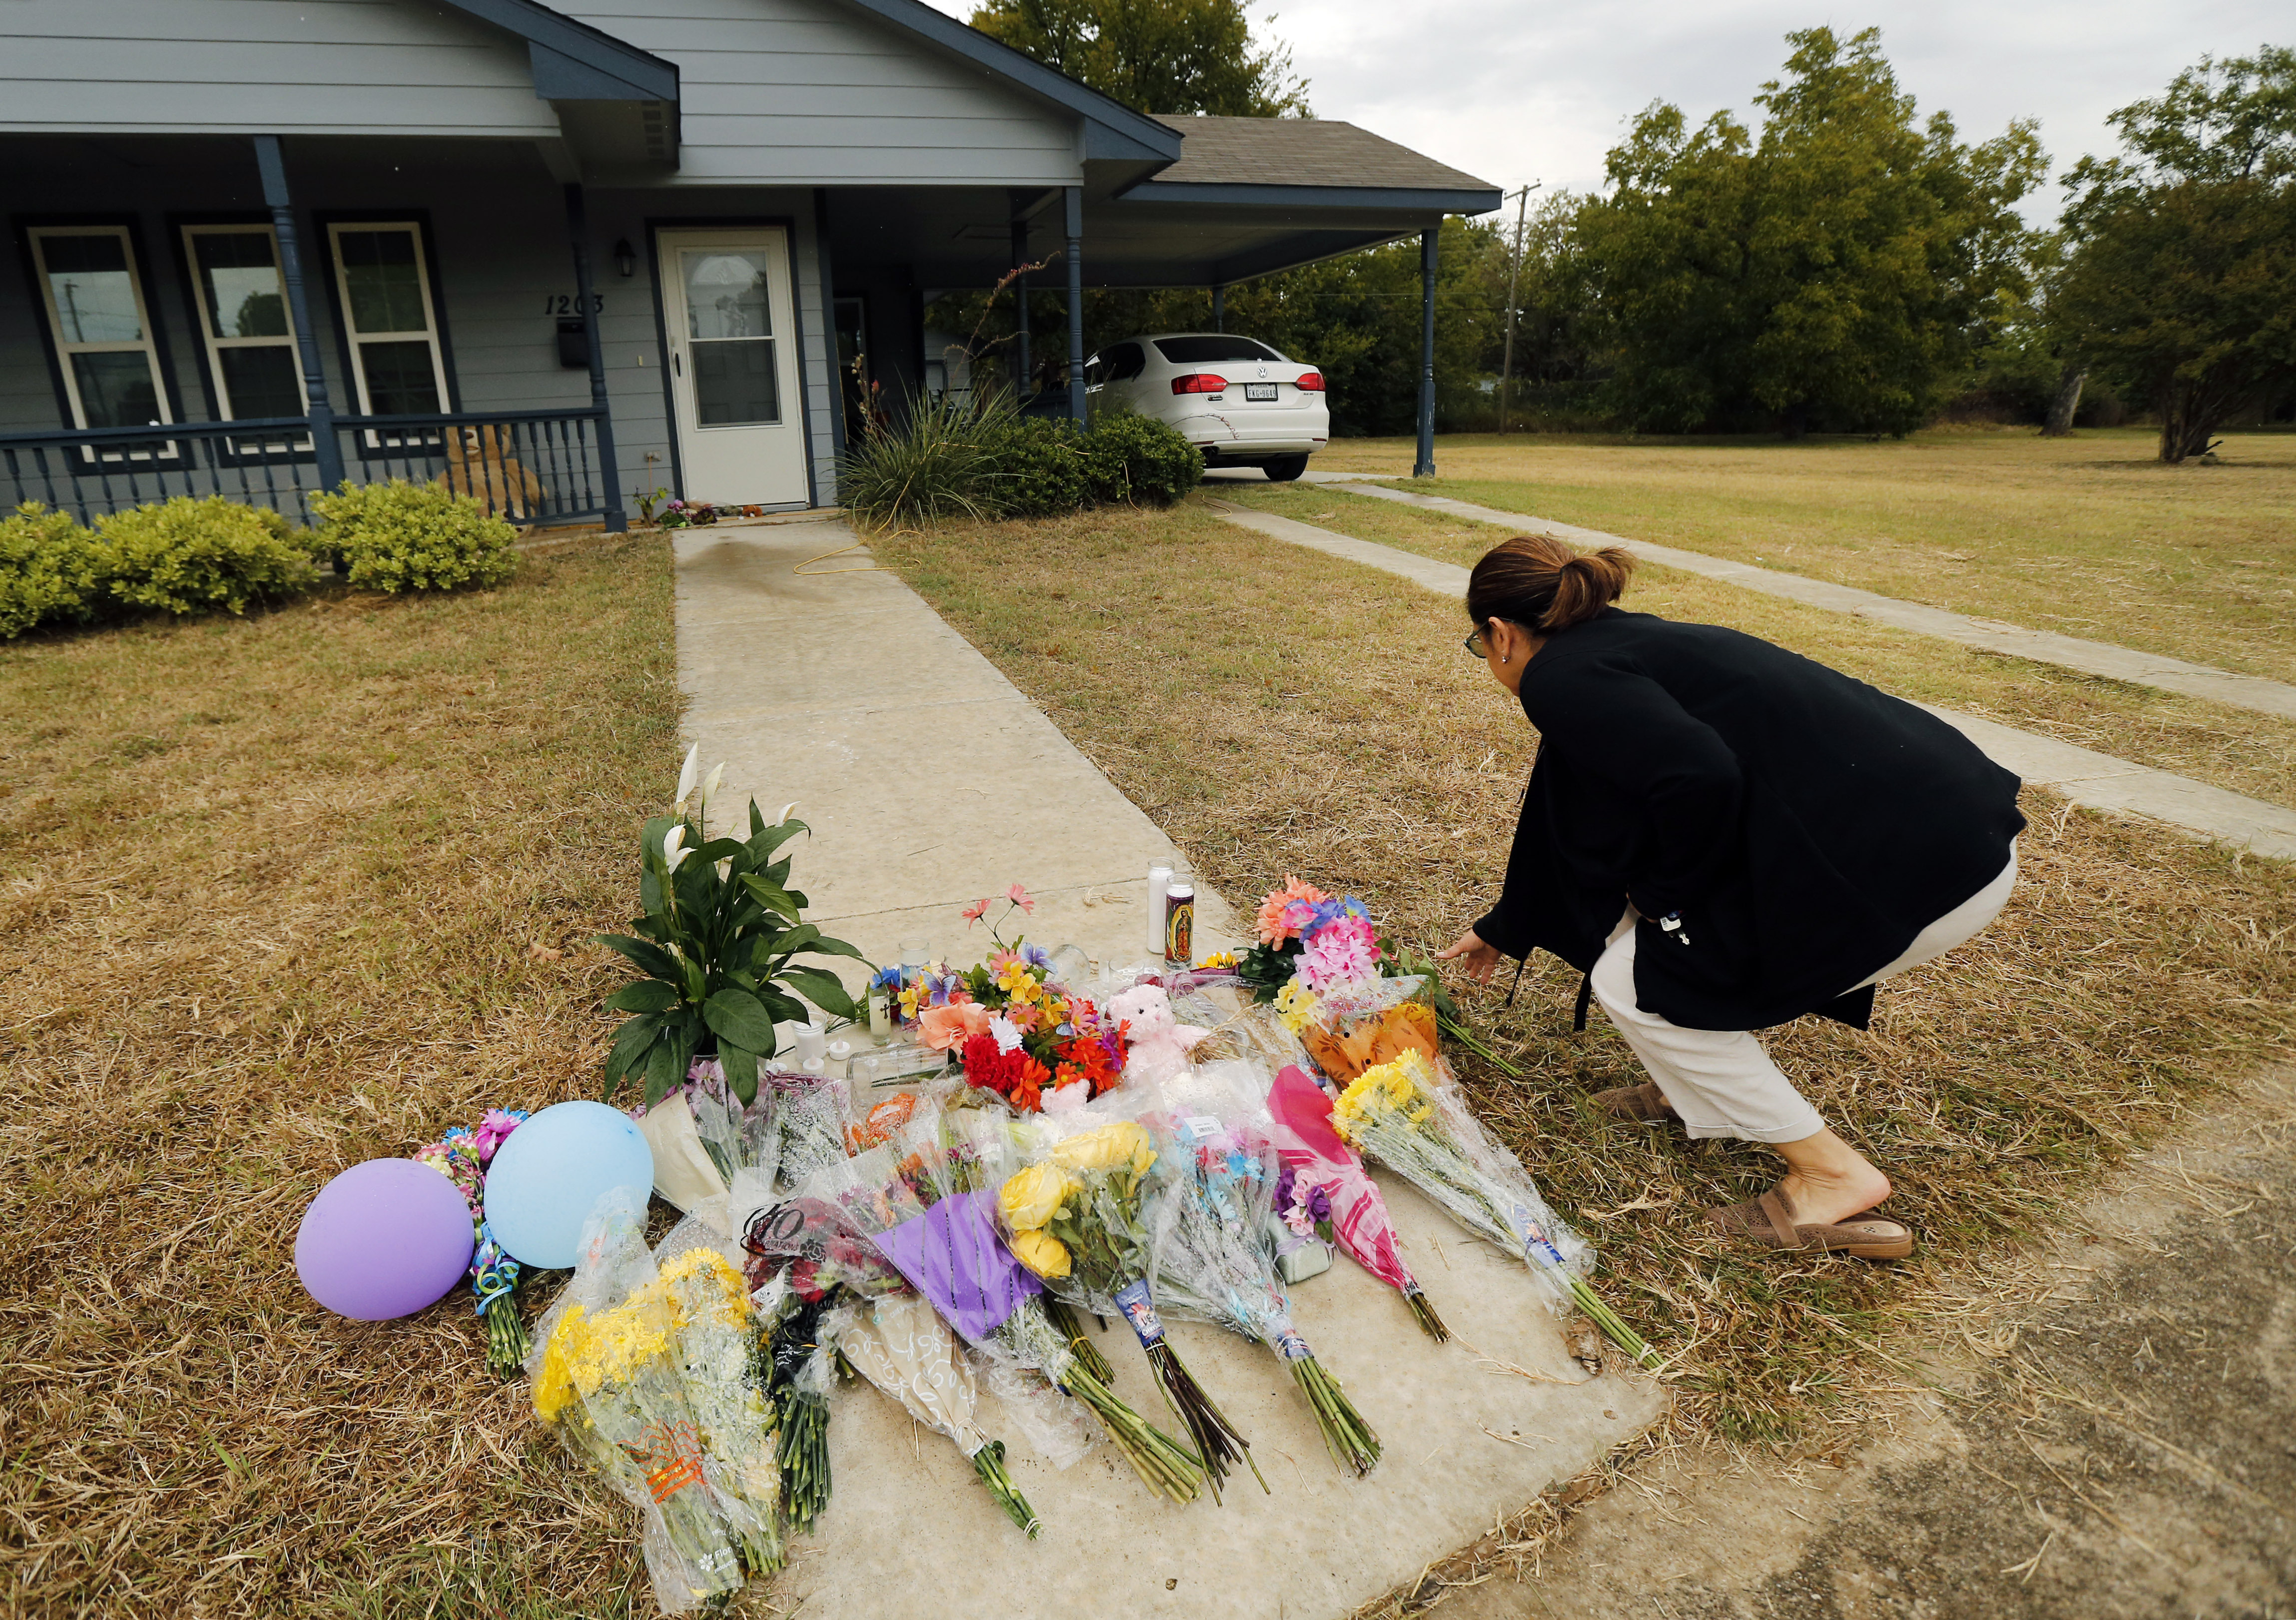 Anastasia Gonzalez, of Burleson, Texas, leaves a flowers on the front sidewalk of Atatiana Jefferson's home on E. Allen Ave in Fort Worth on Oct. 15, 2019.